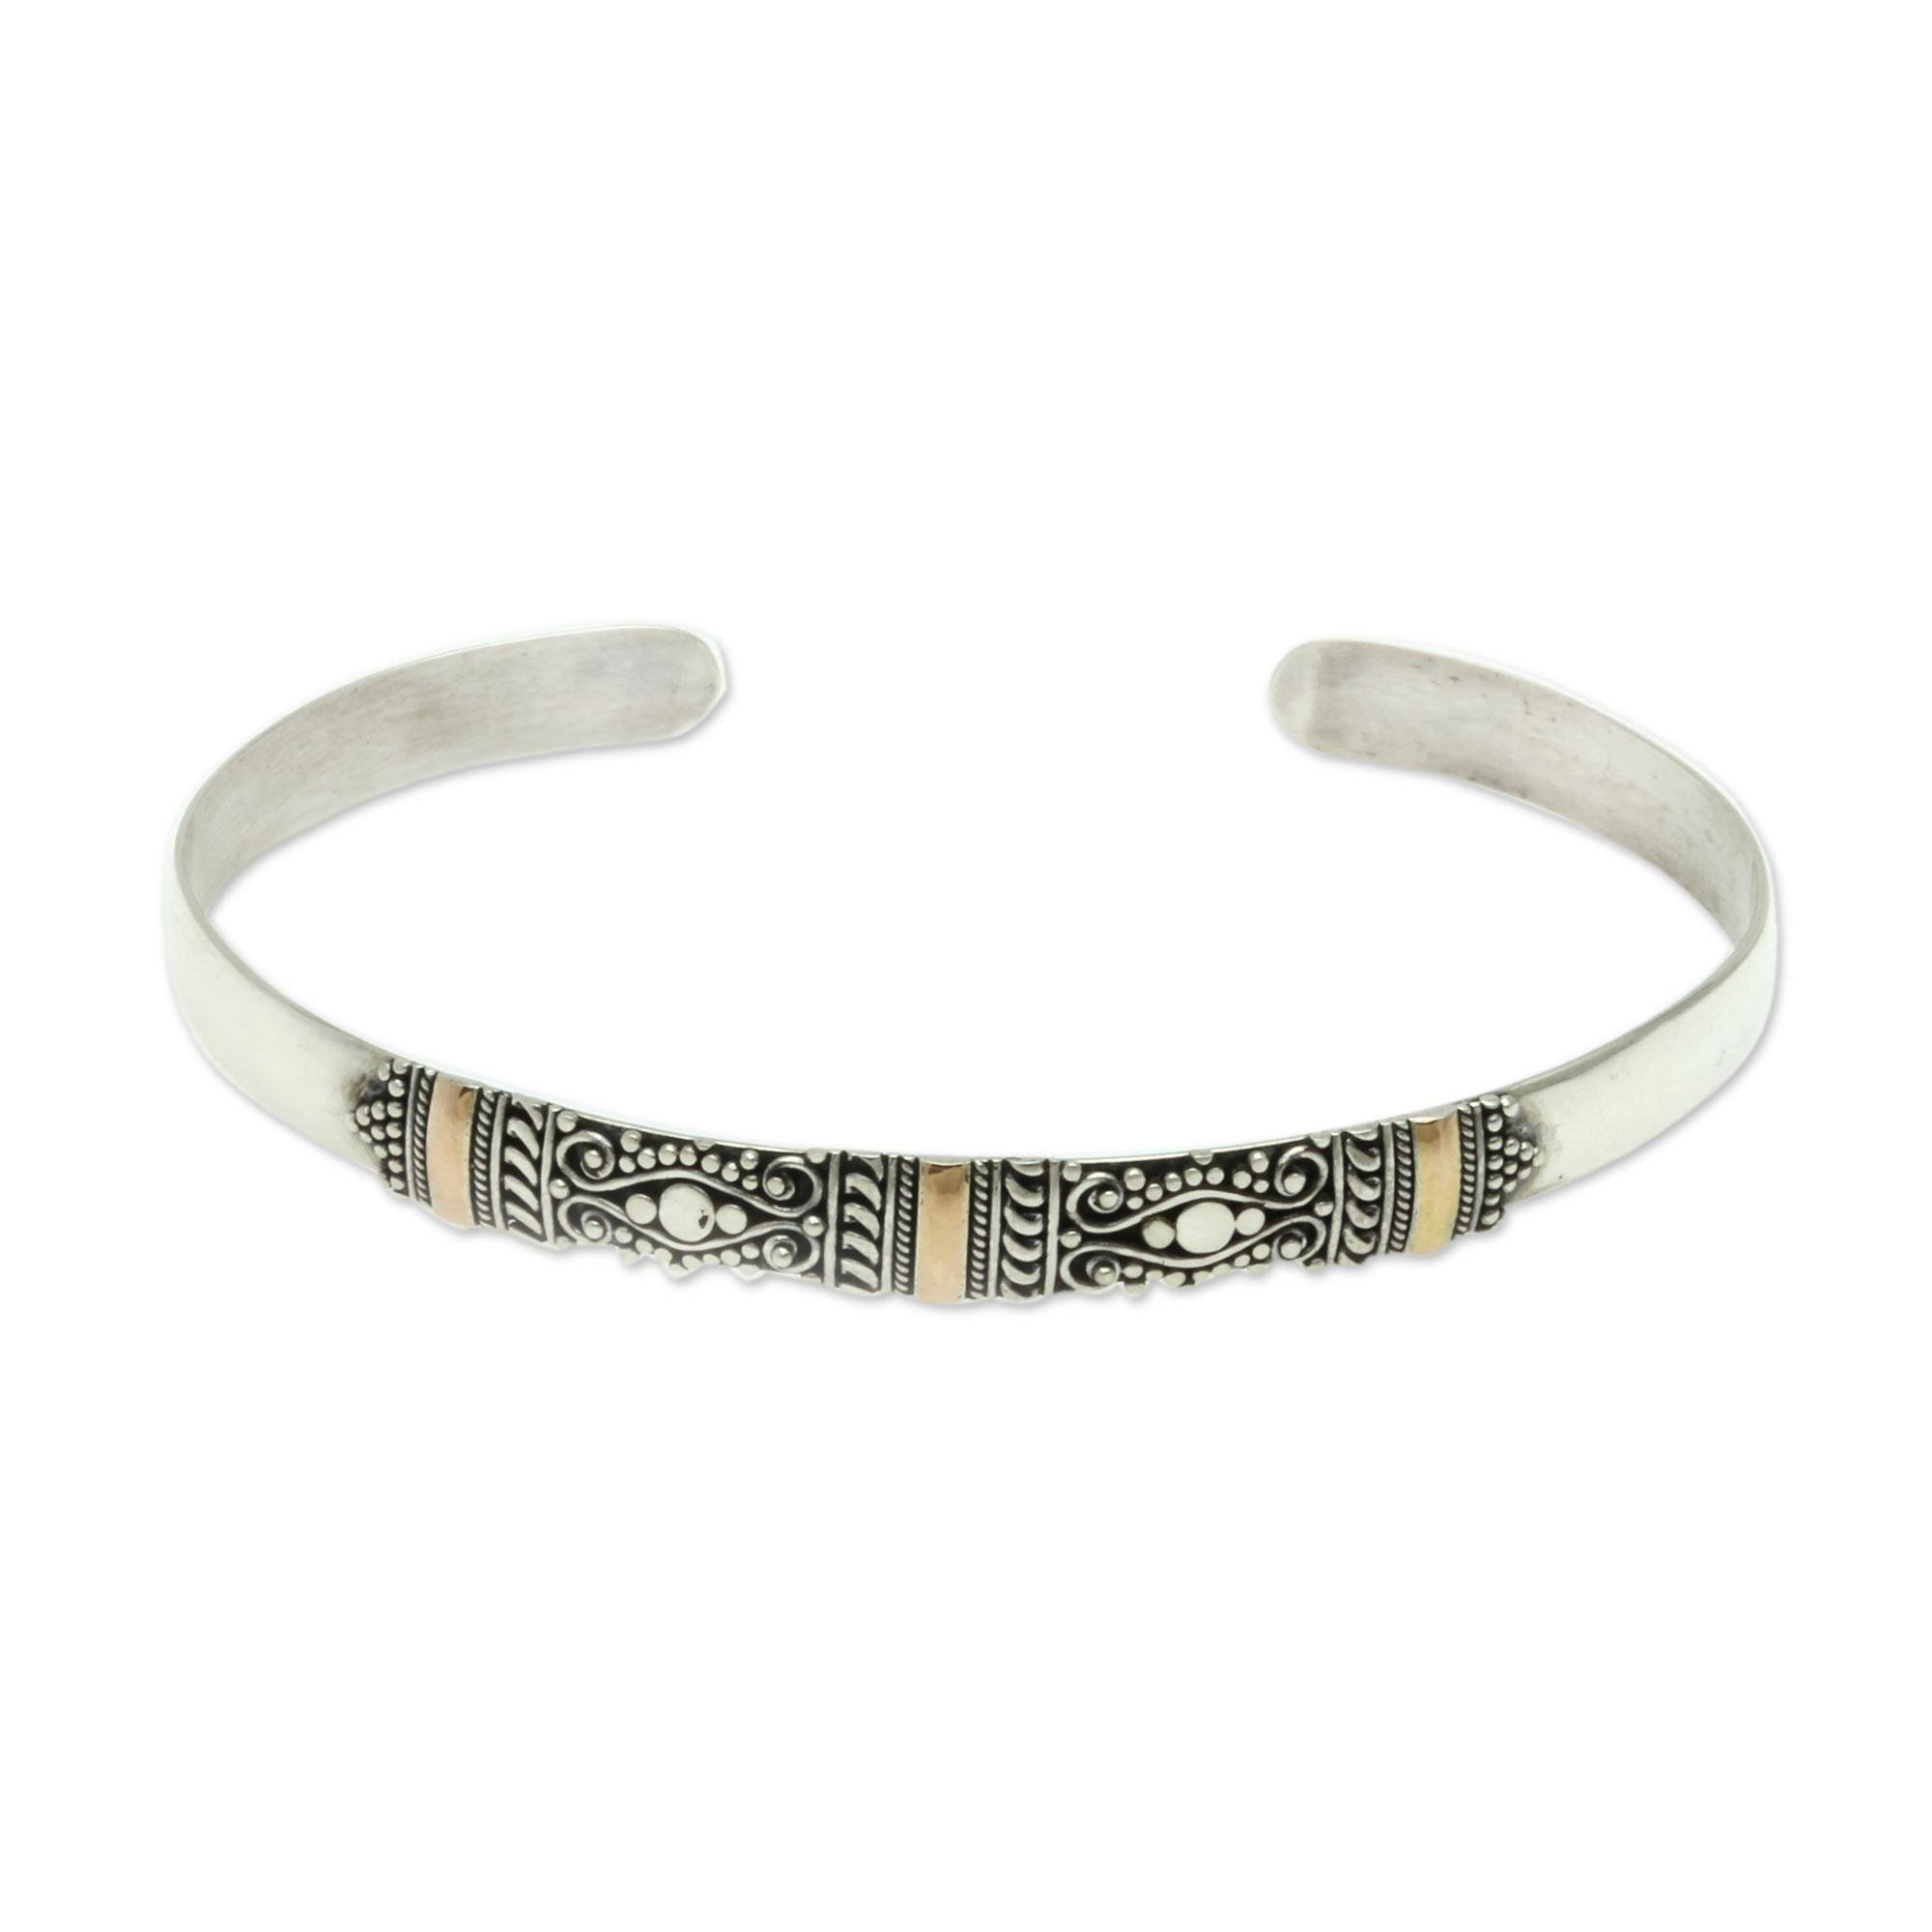 NOVICA 18k Yellow Gold Plated Accent .925 Sterling Silver Cuff Bracelet 'Vine Tendrils'